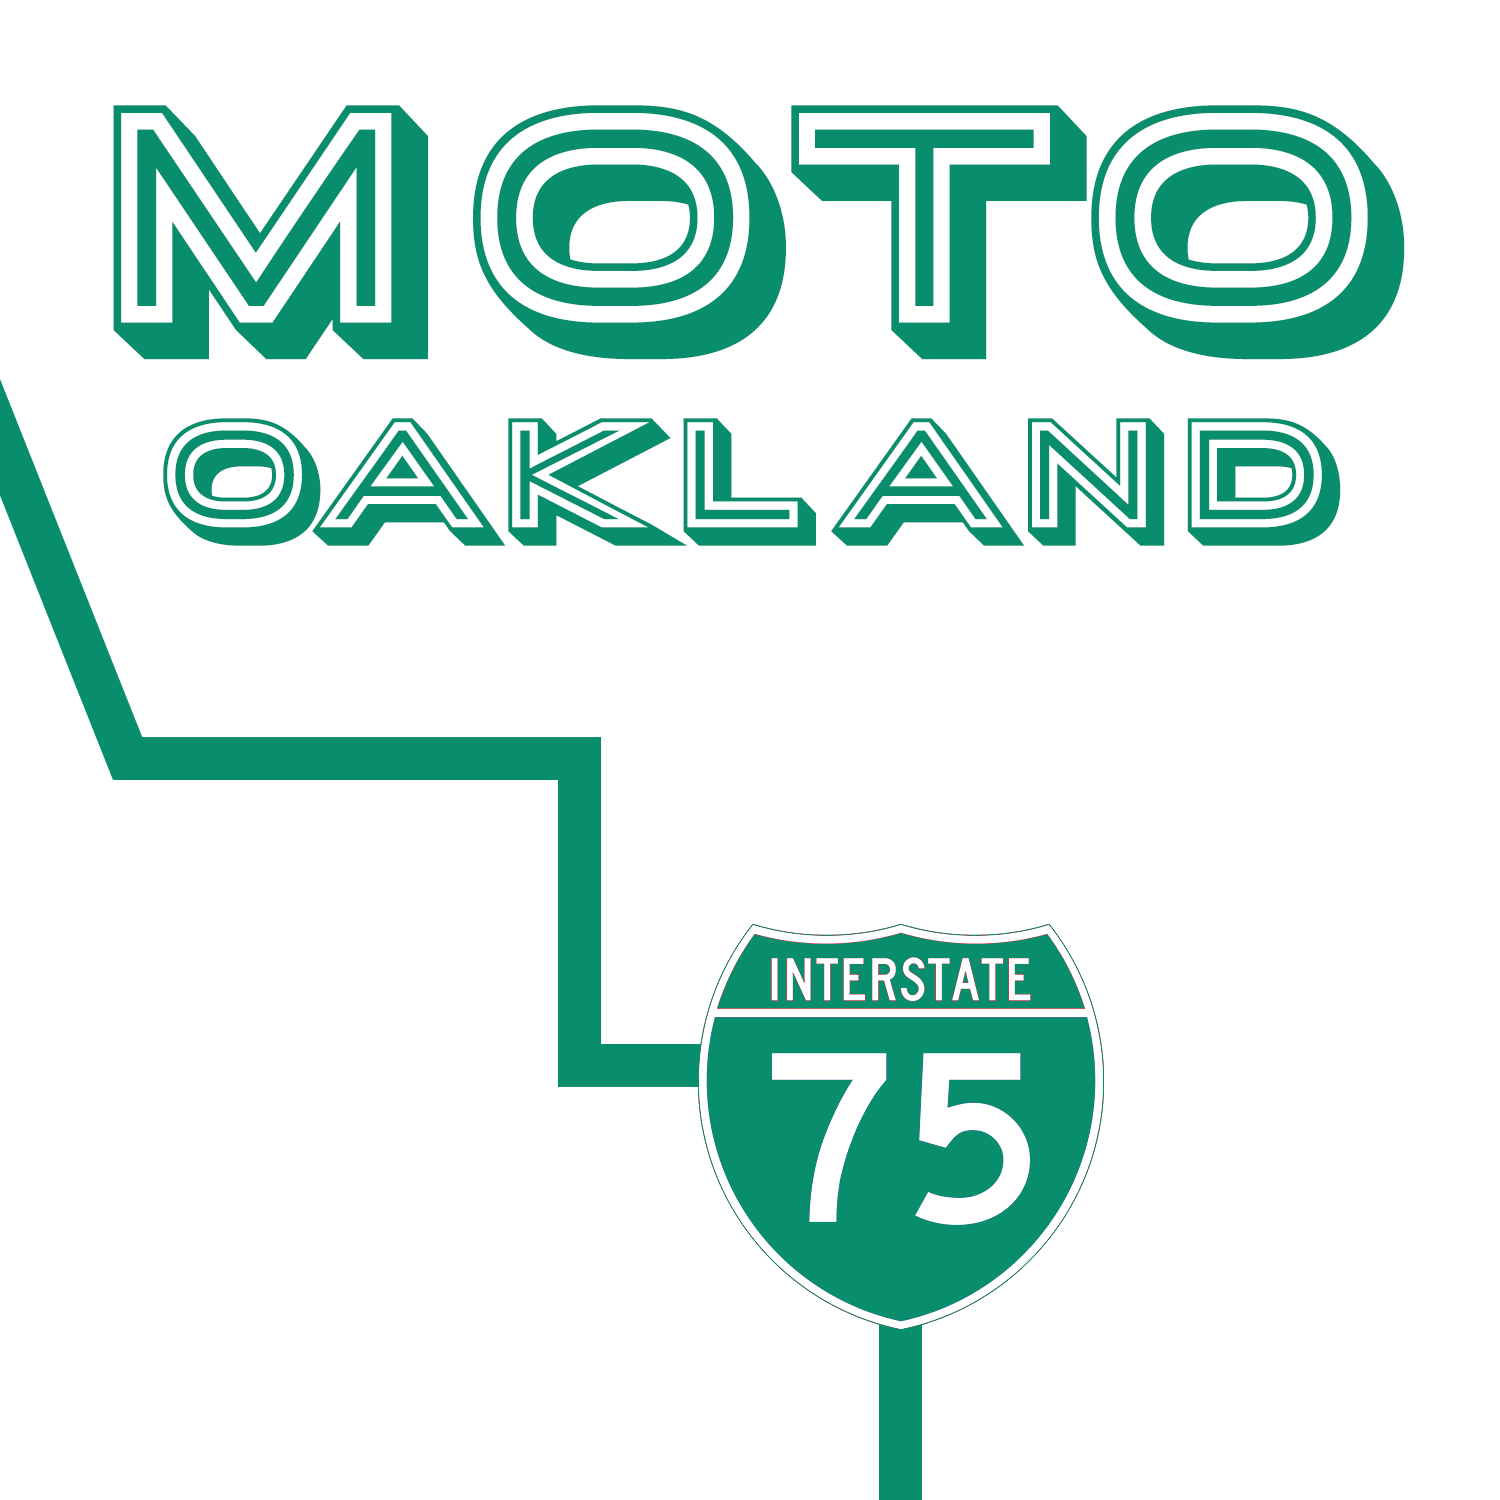 moto oakland chapter.png